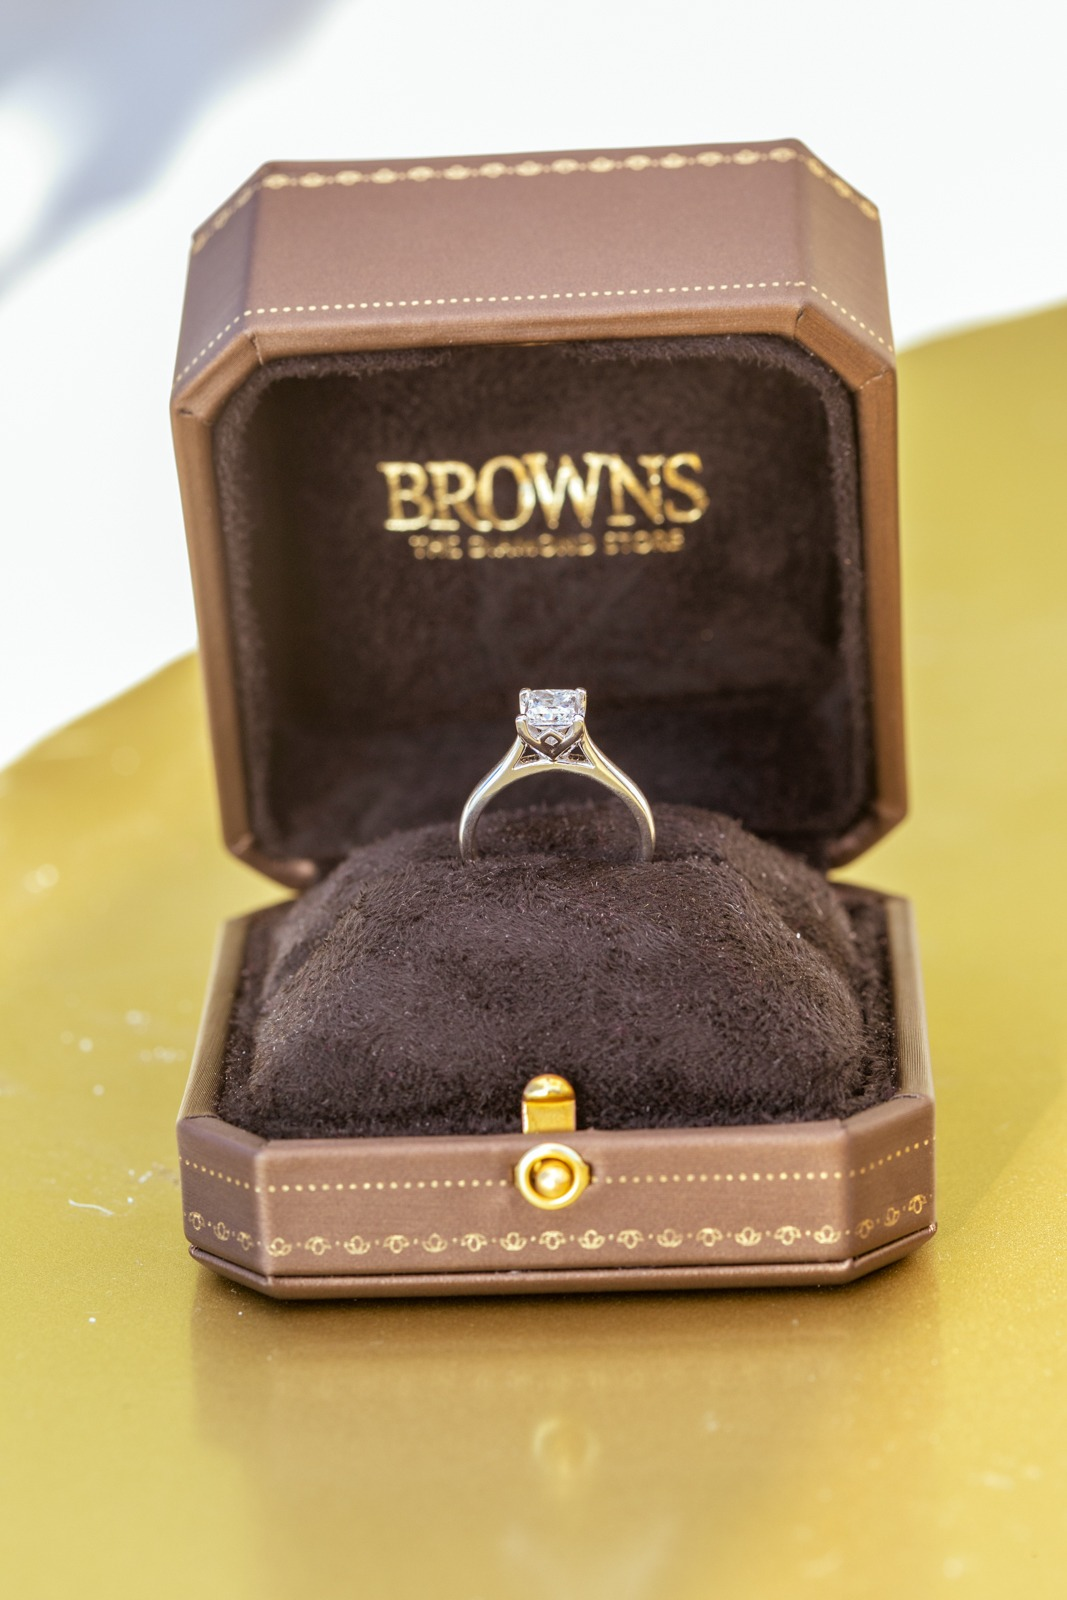 Browns ring